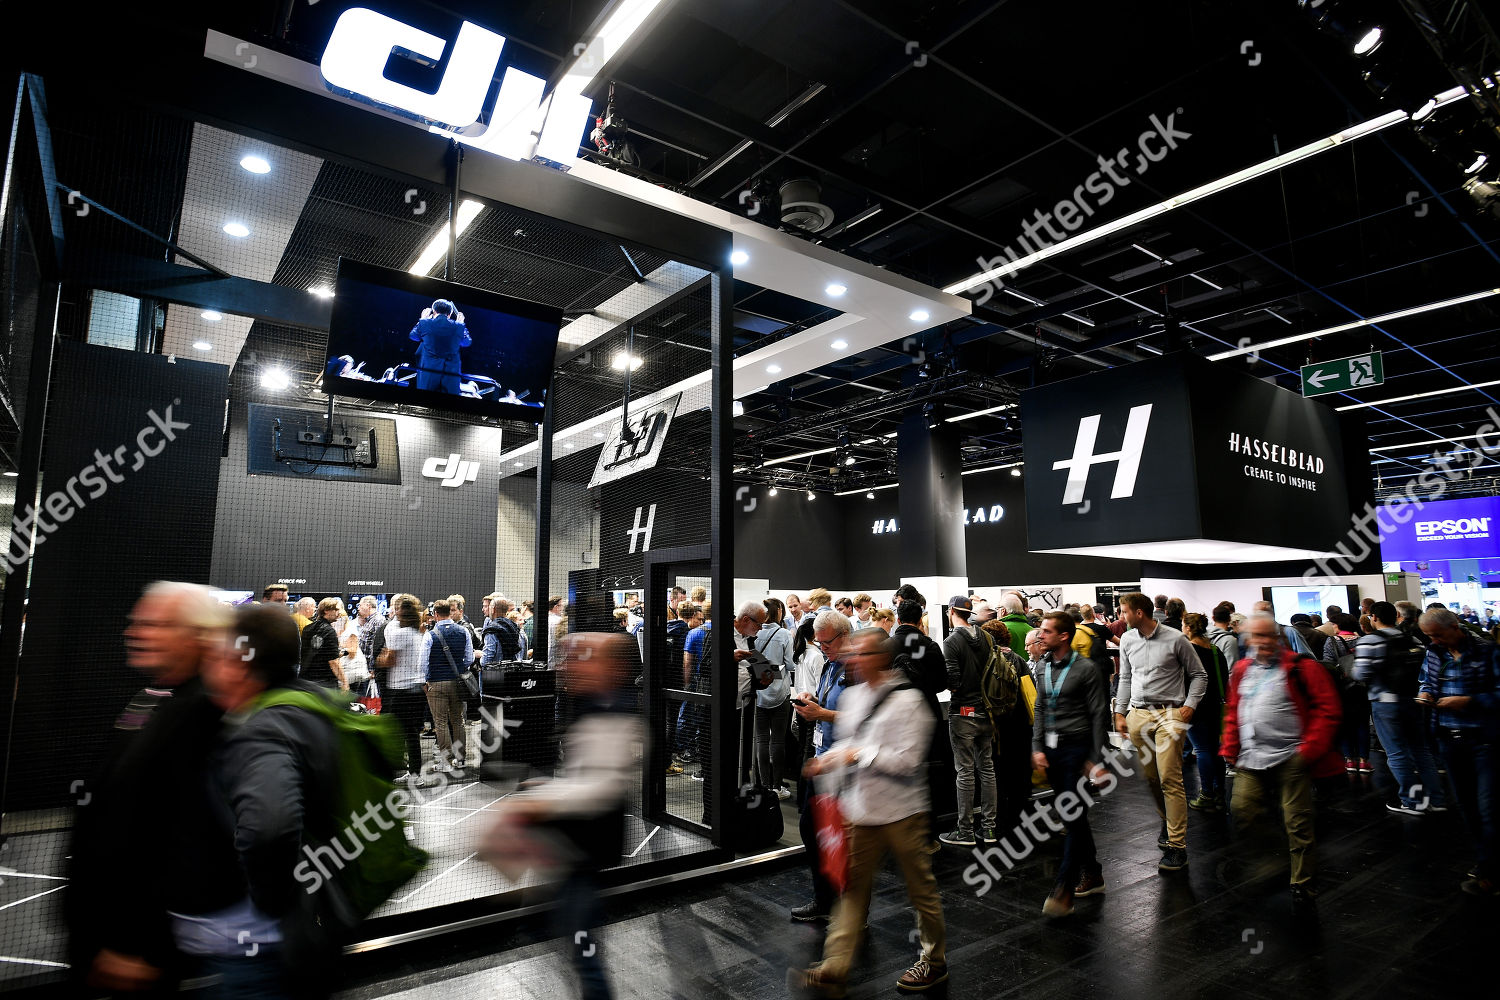 Photography Expo Stands : Visitors gather around dji hasselblad stands during editorial stock